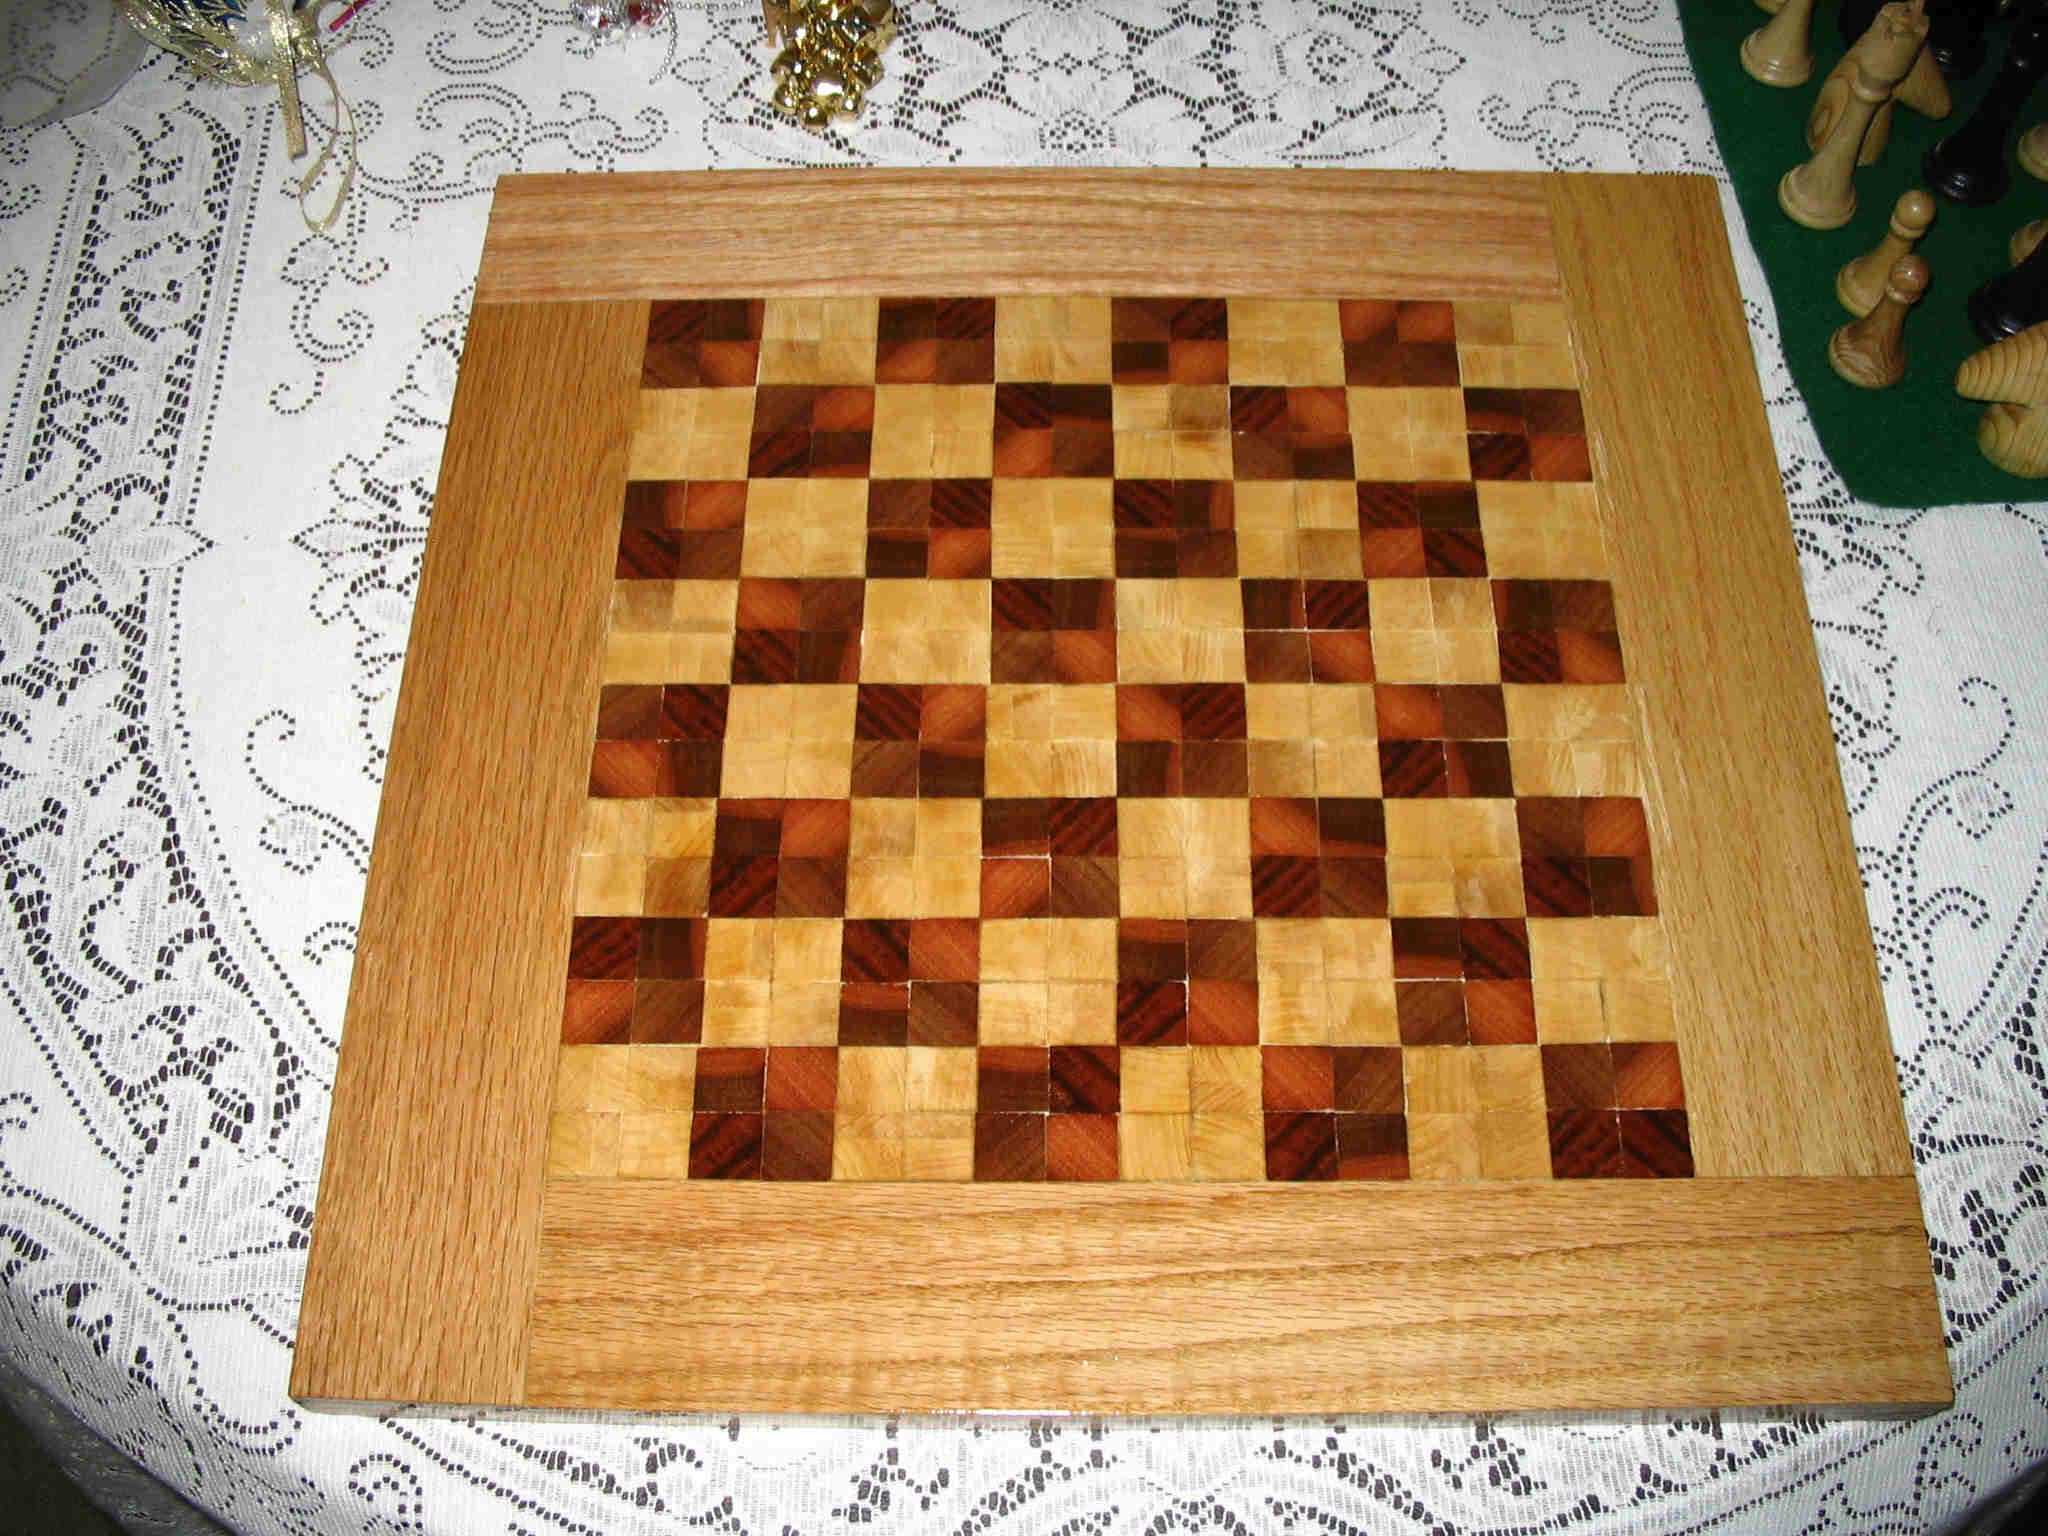 chinese chess - News Videos Images WebSites Wiki | 10news.org